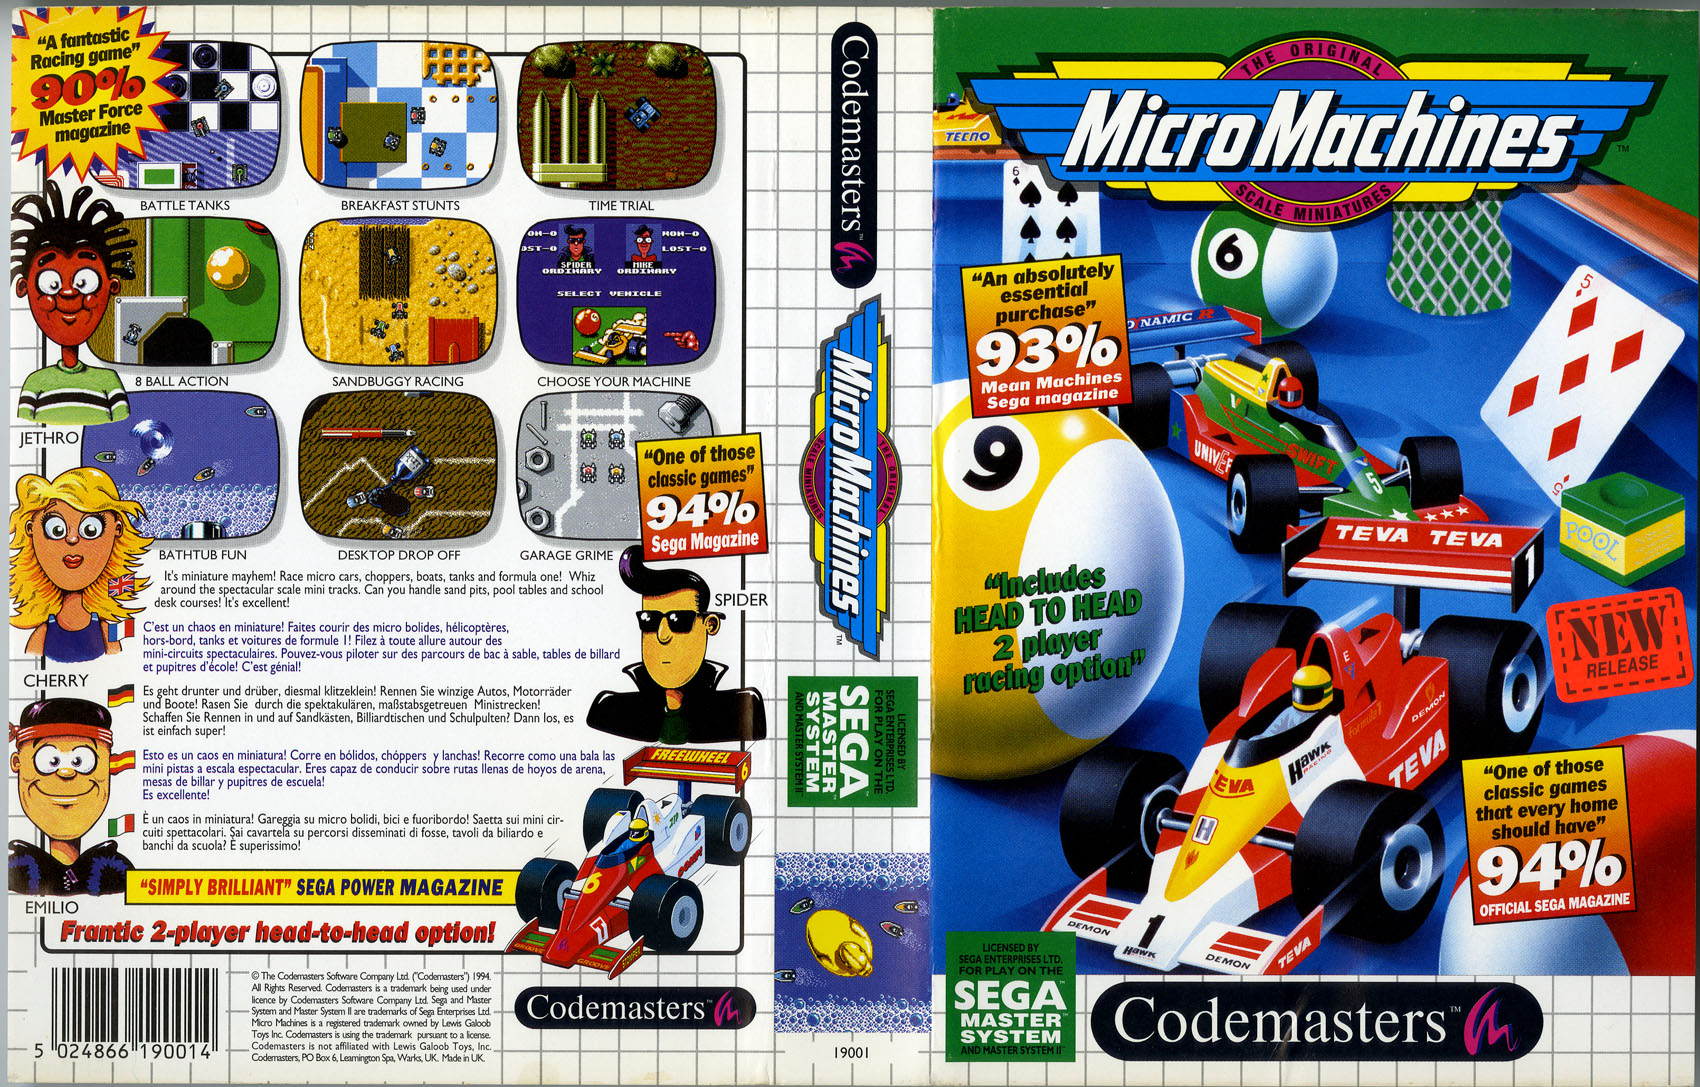 http://www.smspower.org/uploads/Scans/MicroMachines-SMS-EU-A.jpg